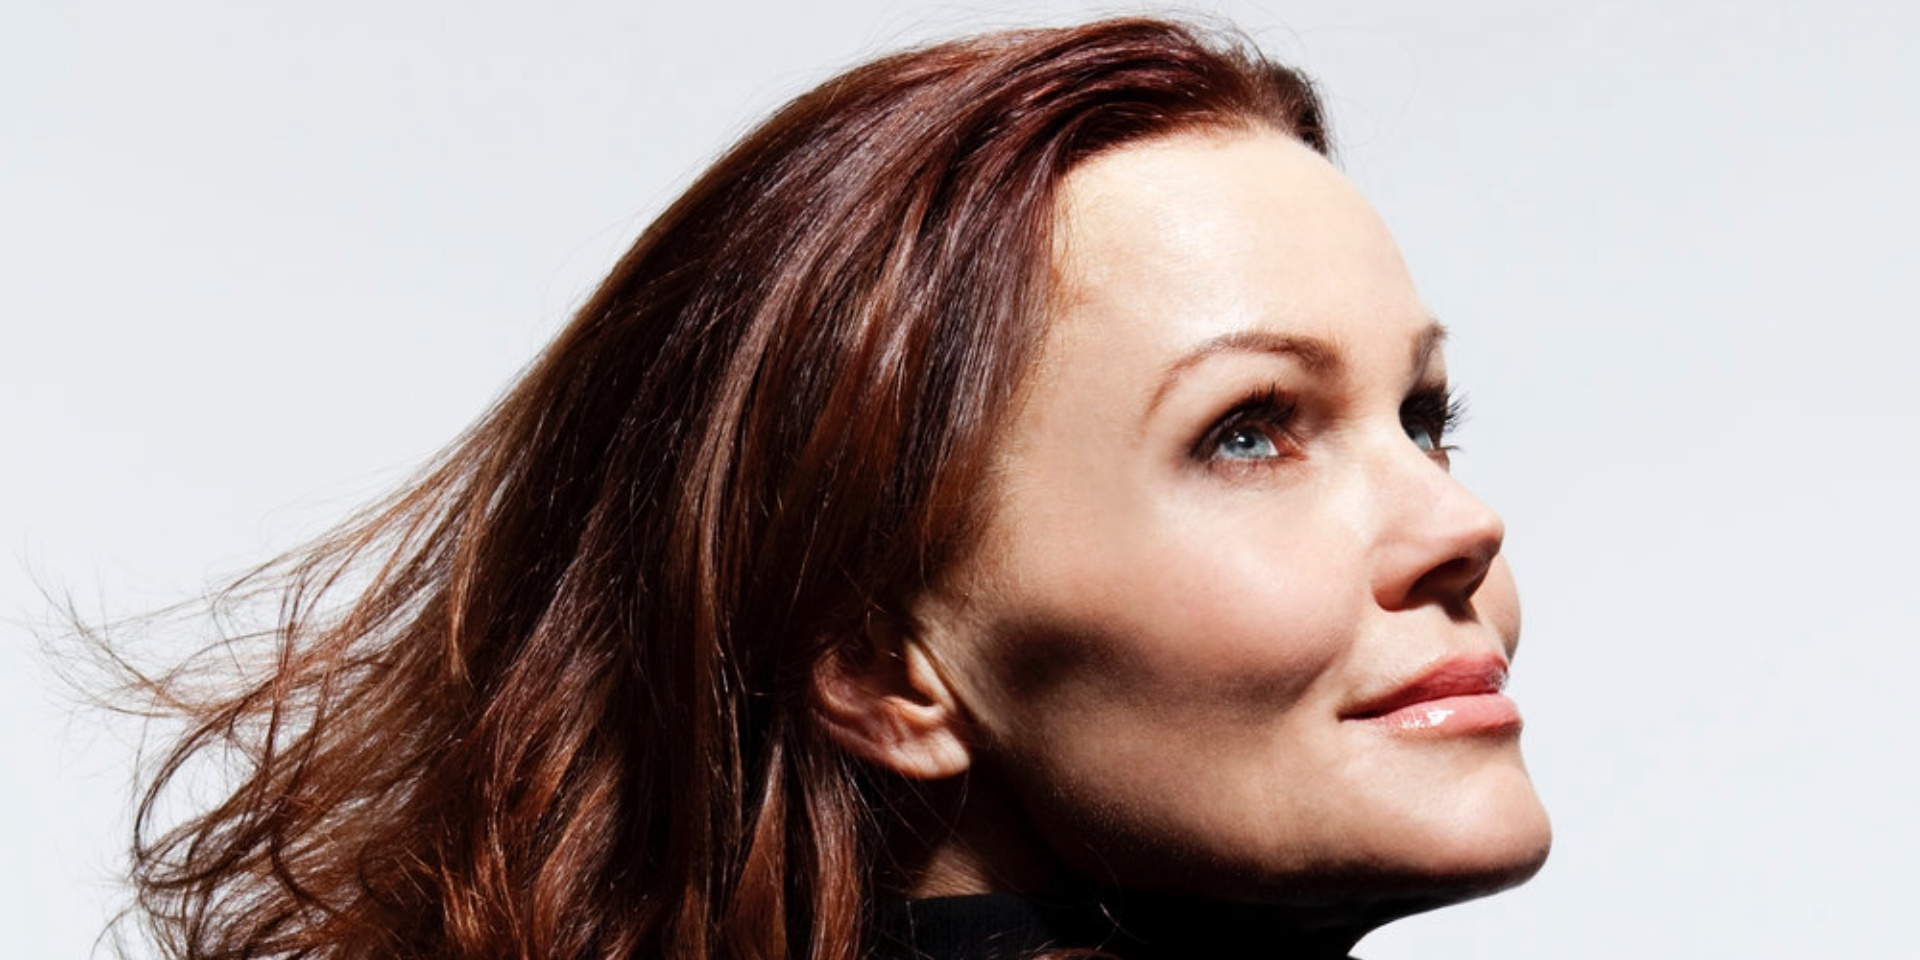 Belinda Carlisle to play in Singapore for 30th Anniversary Tour next year